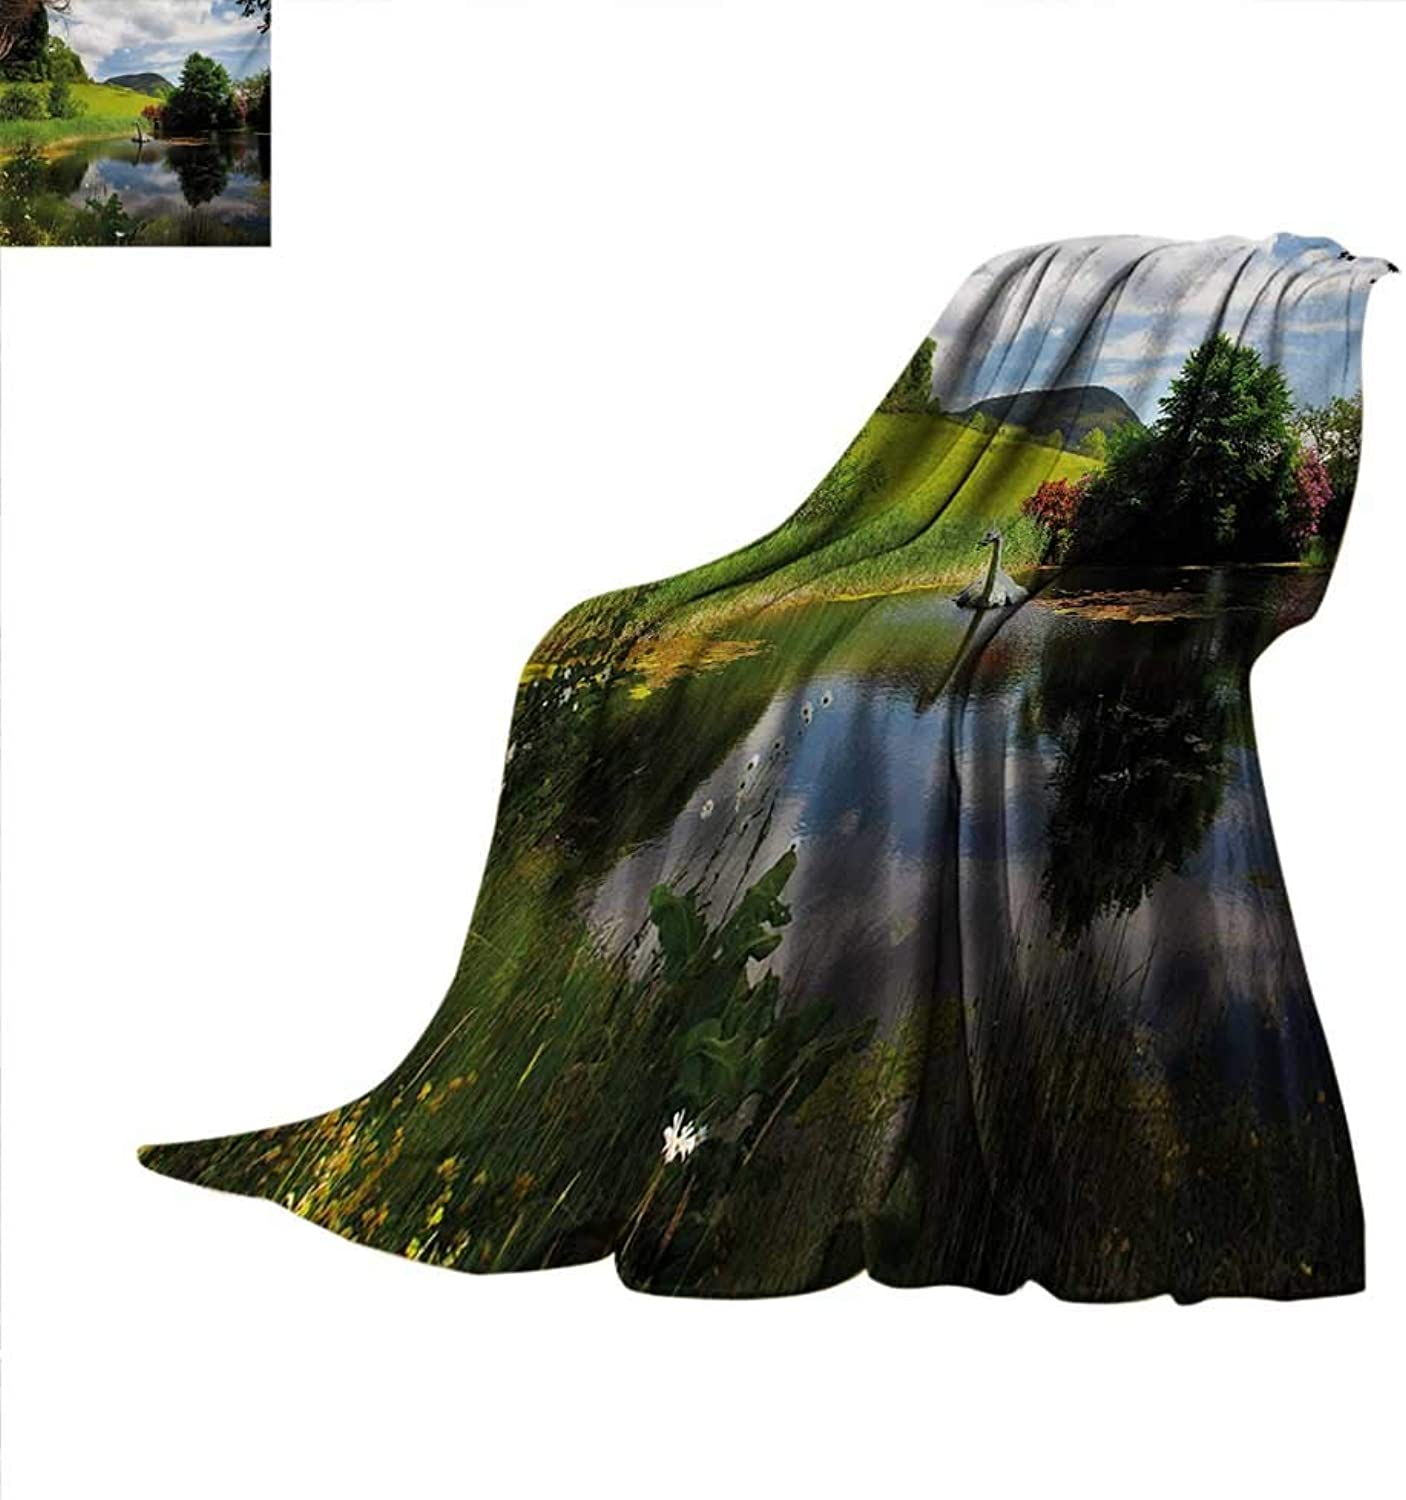 Natureblanket Throw blanketLake by Meadow in a Sunny Day Rural Country Valley Scottish Summertime Landscapeoutdoor Blanket 60 x50  Multicolor